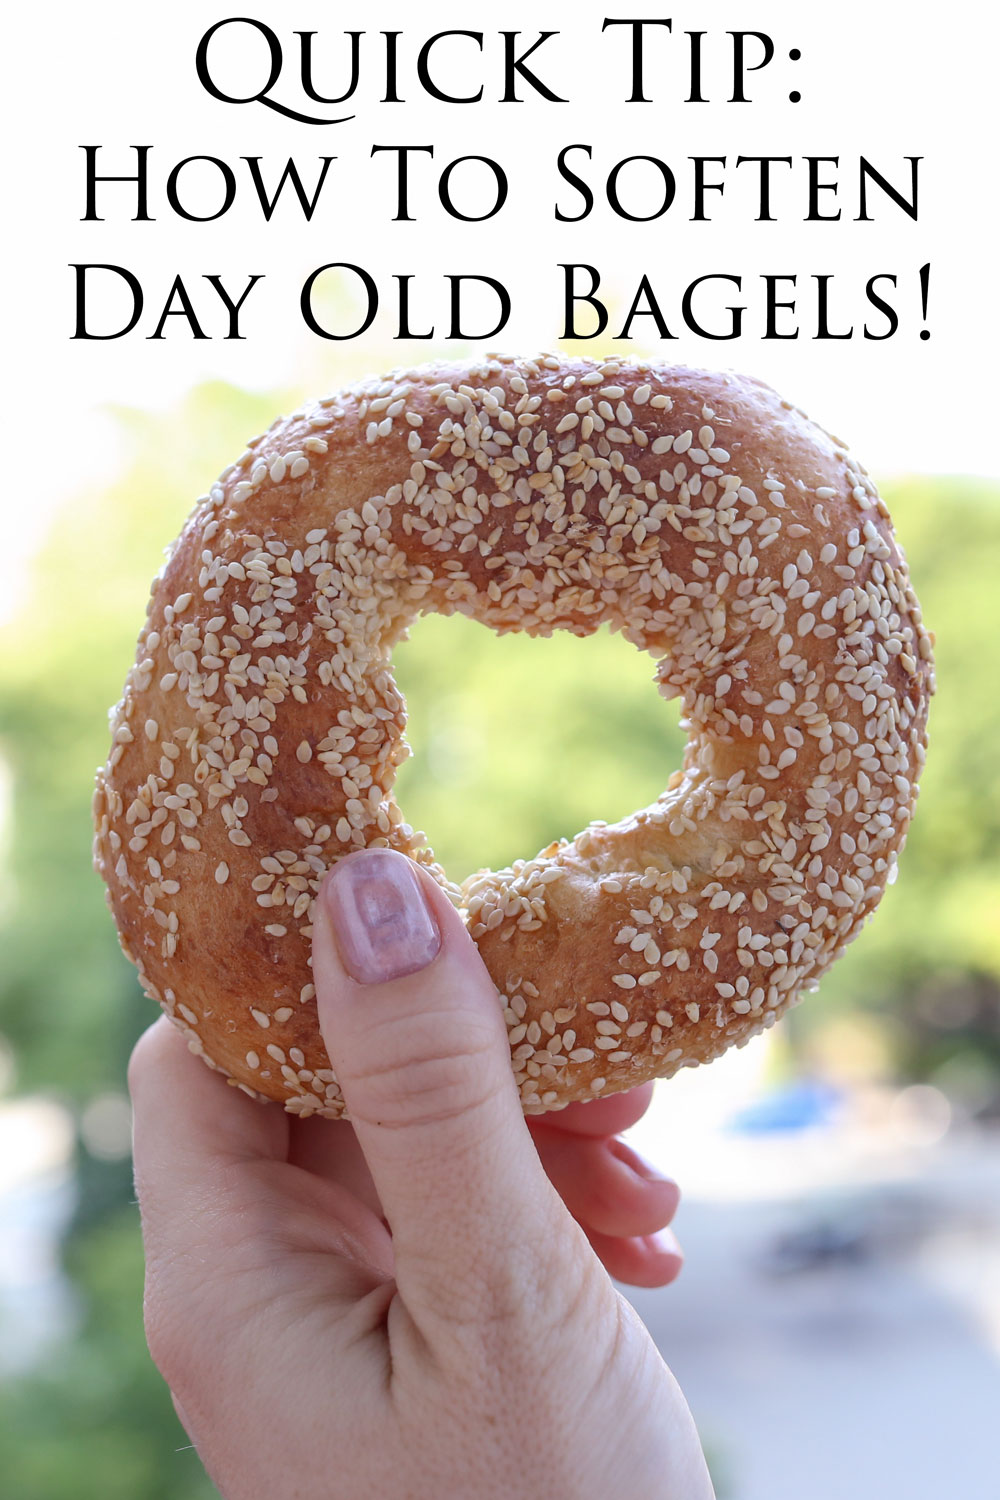 Quick hack for steaming day old, stale bagels at home, using just a sprinkling of water! - Barefeet In The Kitchen